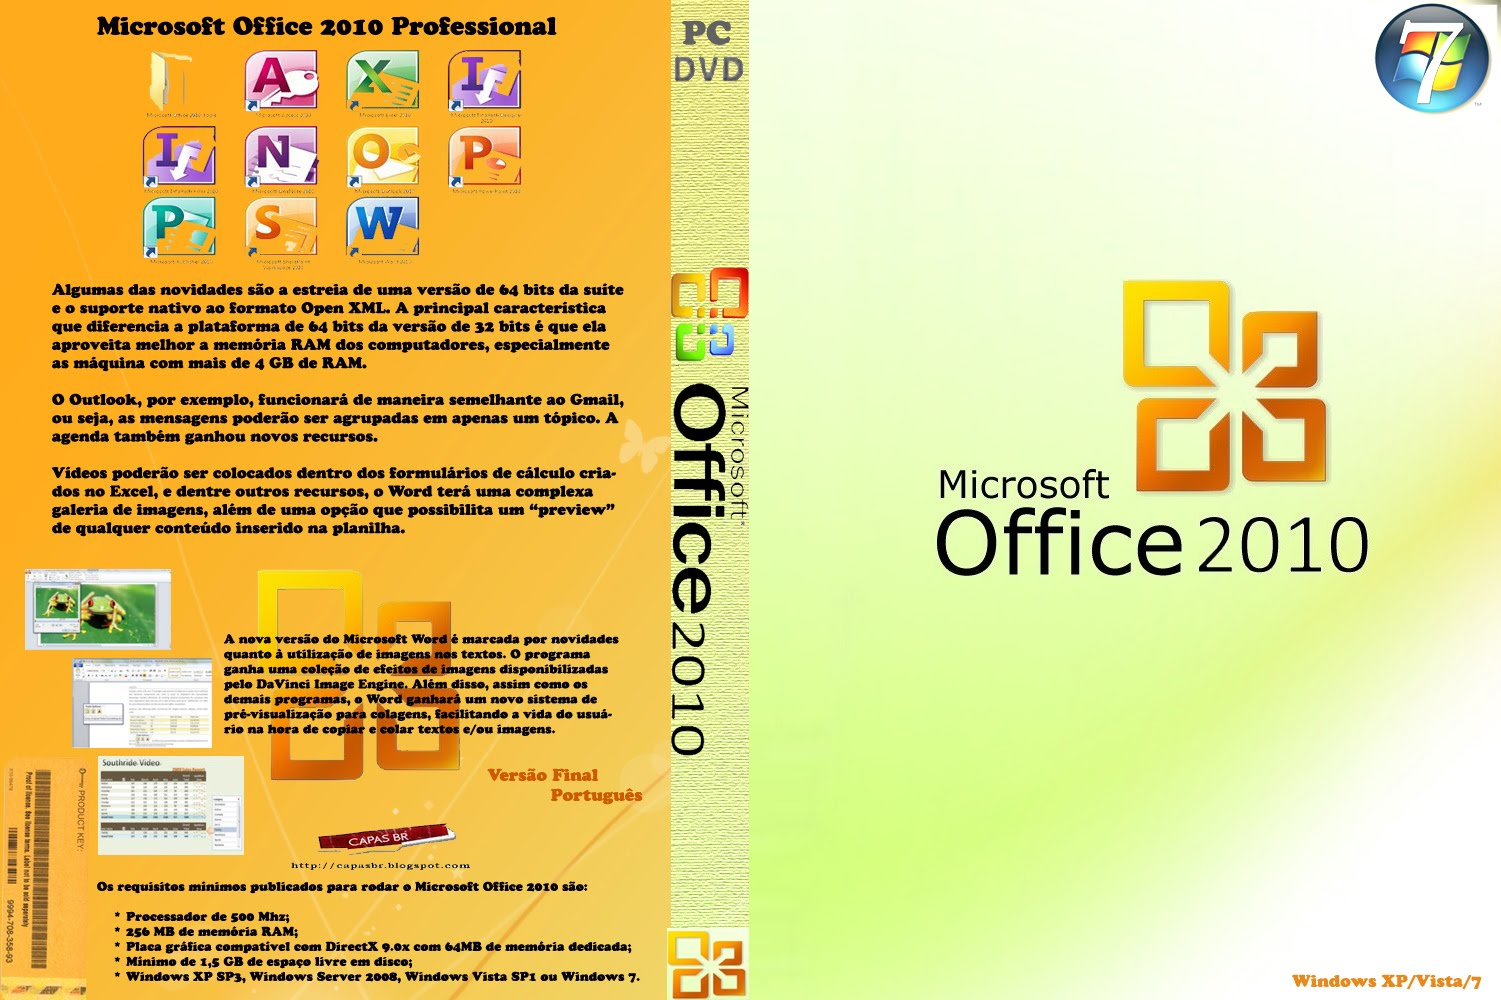 microsoft office 2010 crack 64 bit